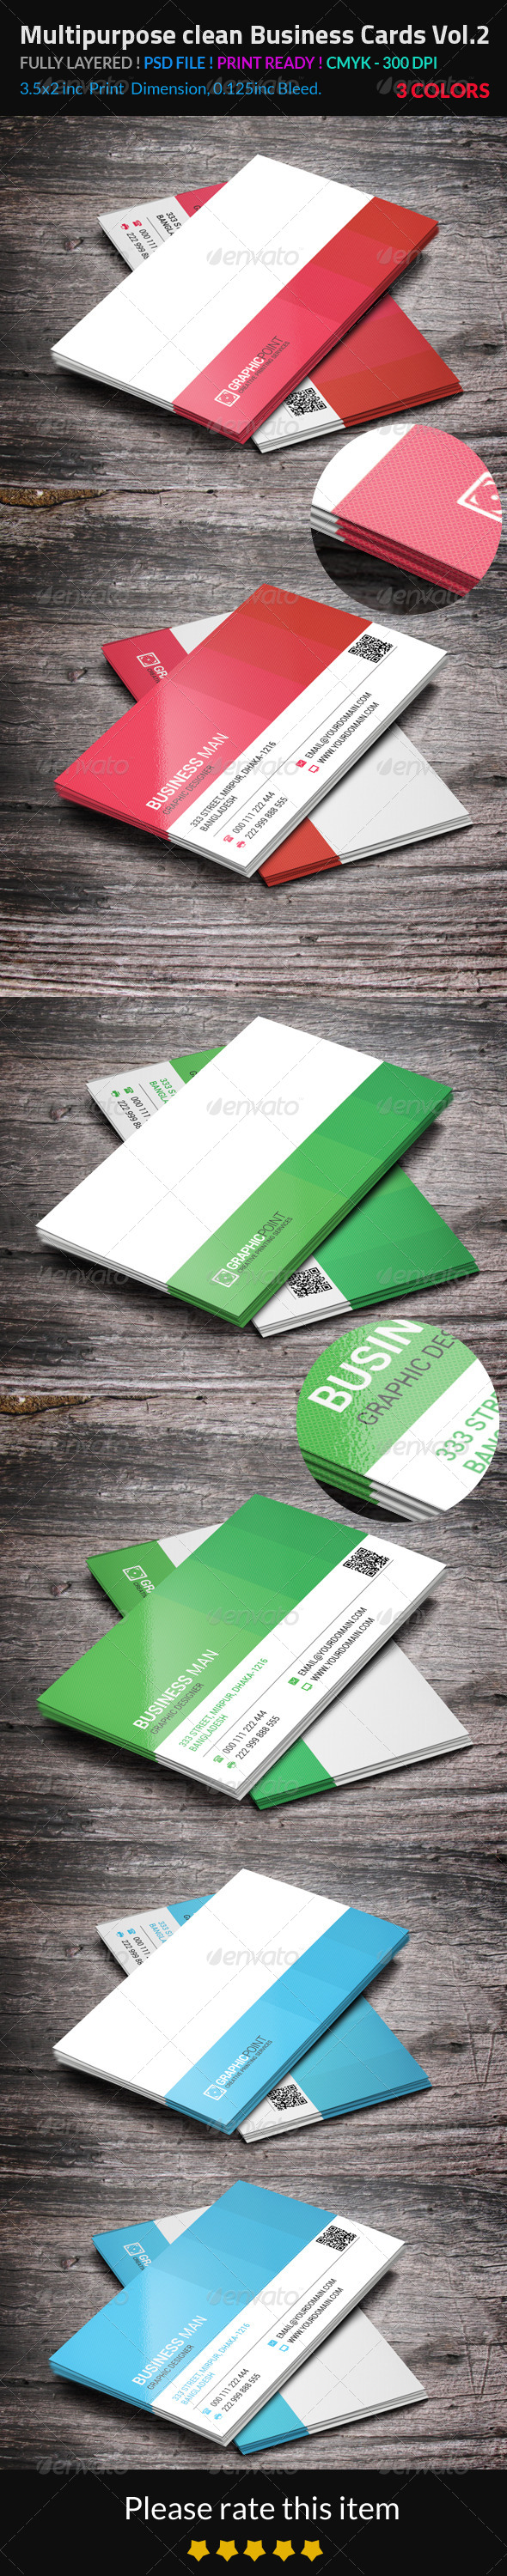 GraphicRiver Multipurpose Clean Business Cards Vol.2 8760239